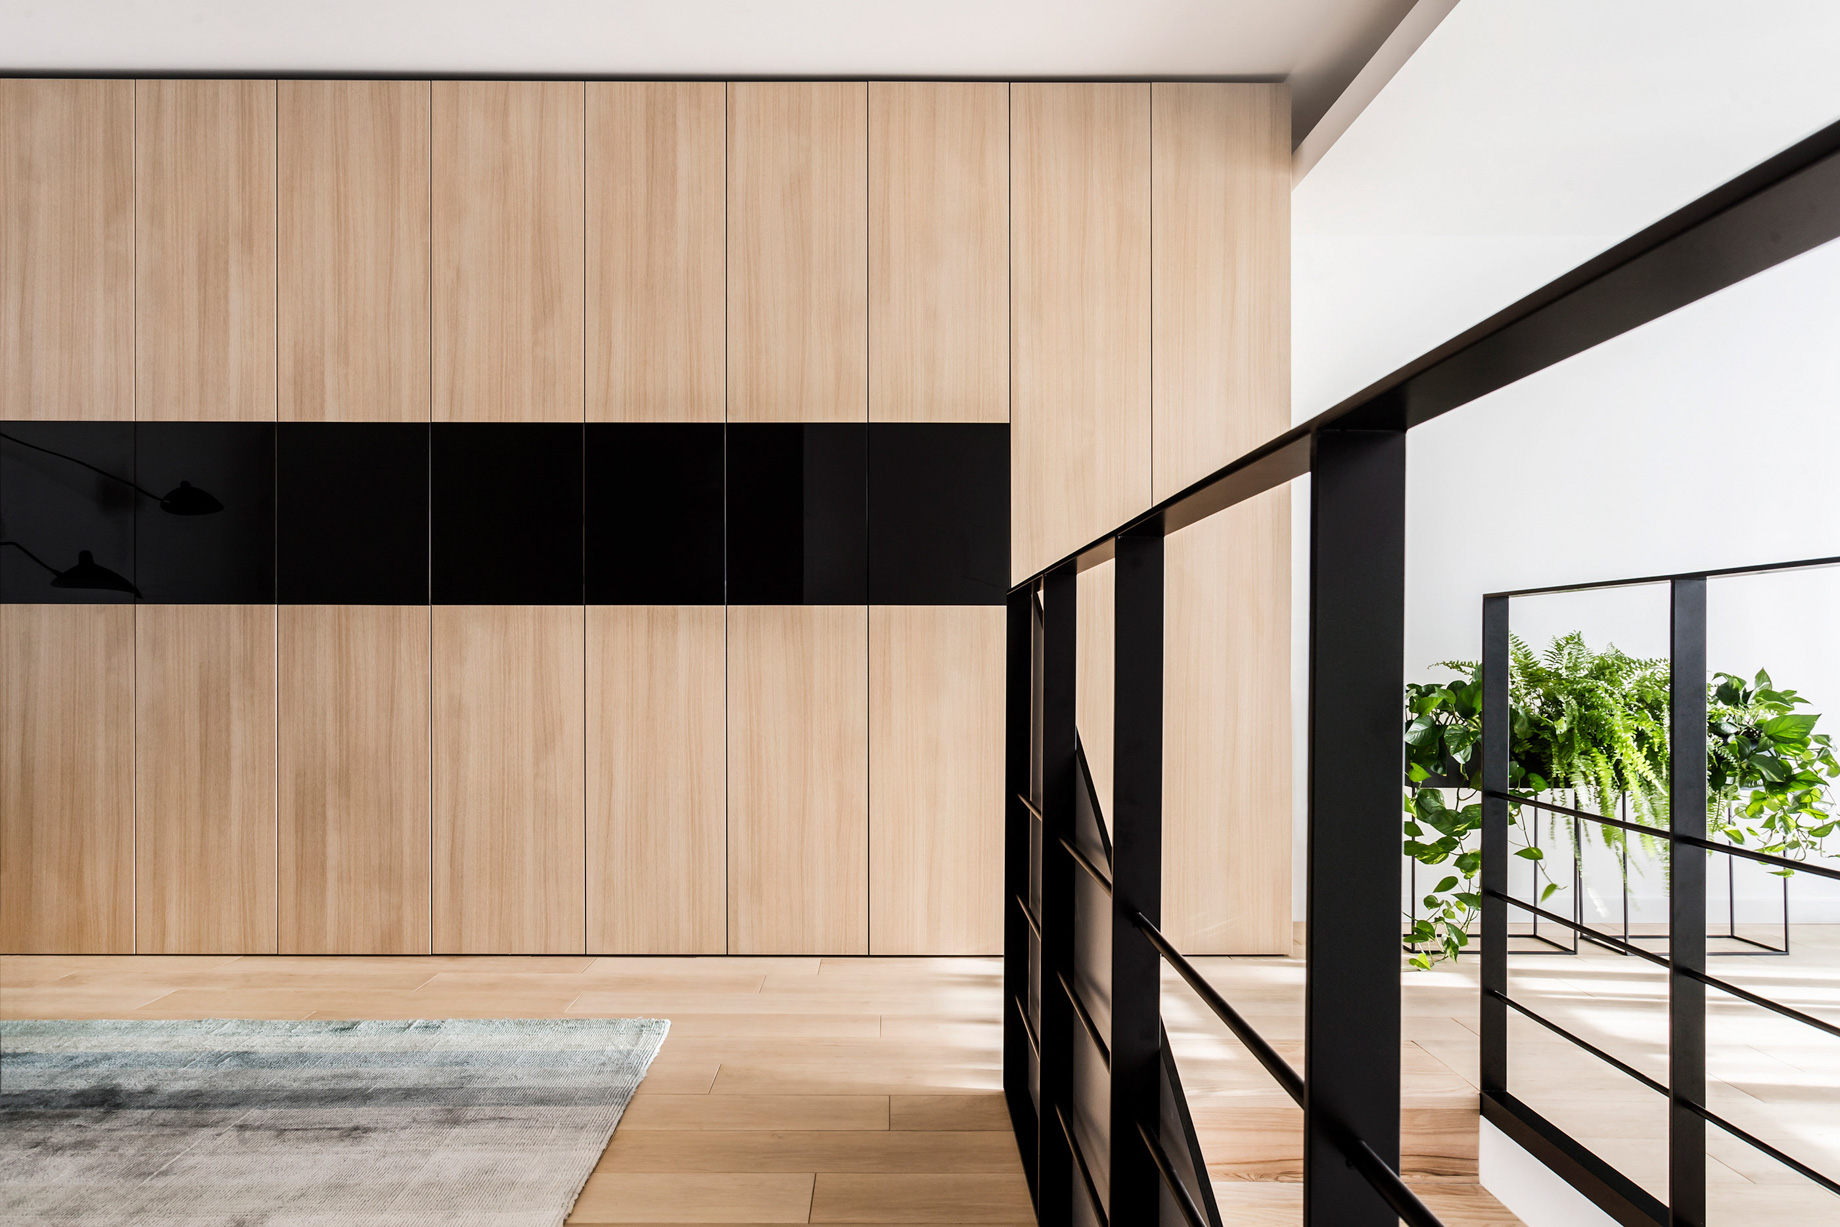 Sonyachna Brama Apartment Interior Design Kiev, Ukraine - Lugerin Architects